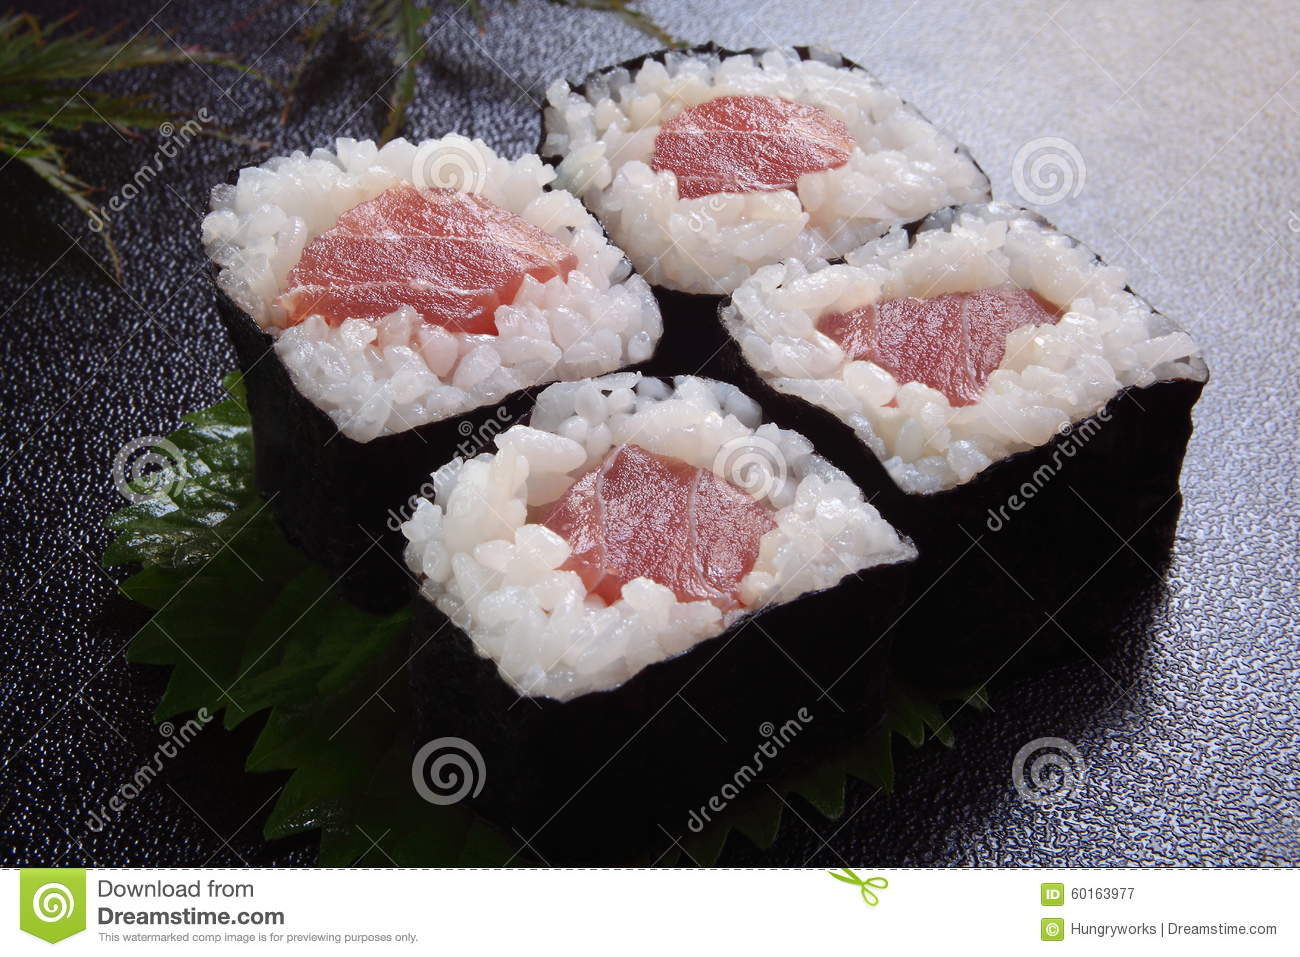 how to prepare tuna for sushi